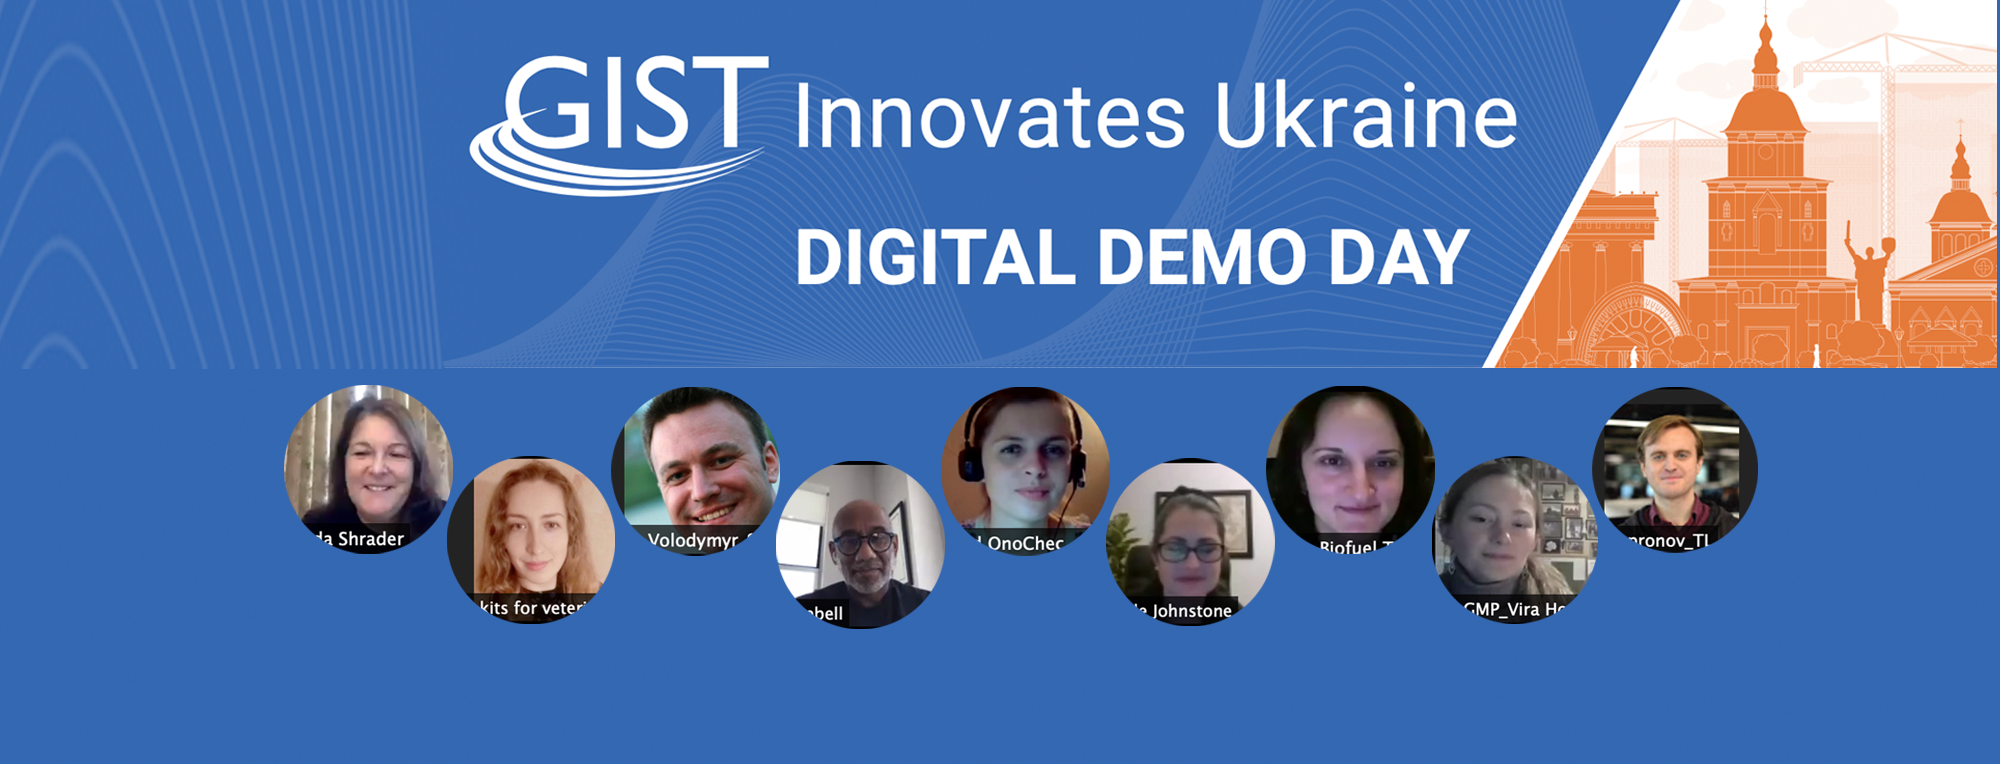 Science & Technology Innovators Shine at GIST Innovates Ukraine Demo Day